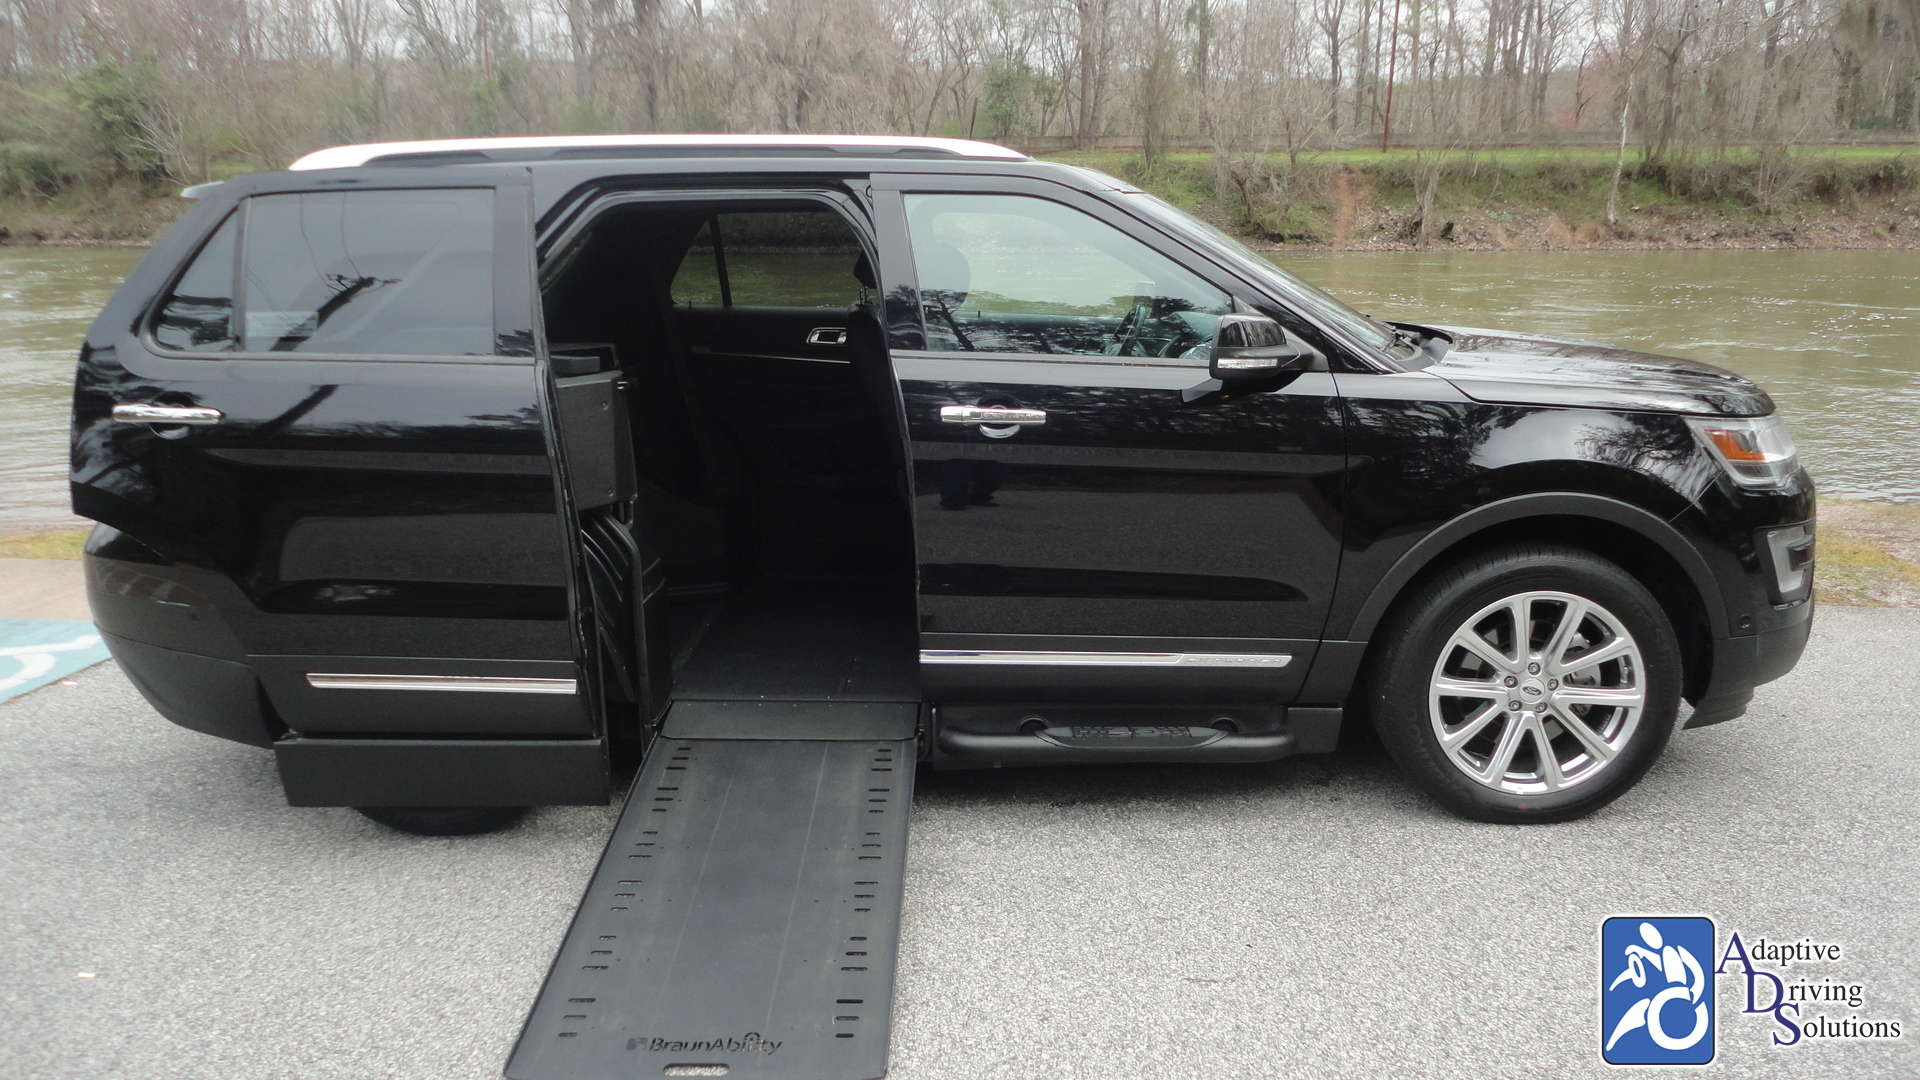 Adaptive Driving Solutions BraunAbility MXV Wheelchair SUV  Gallery Image